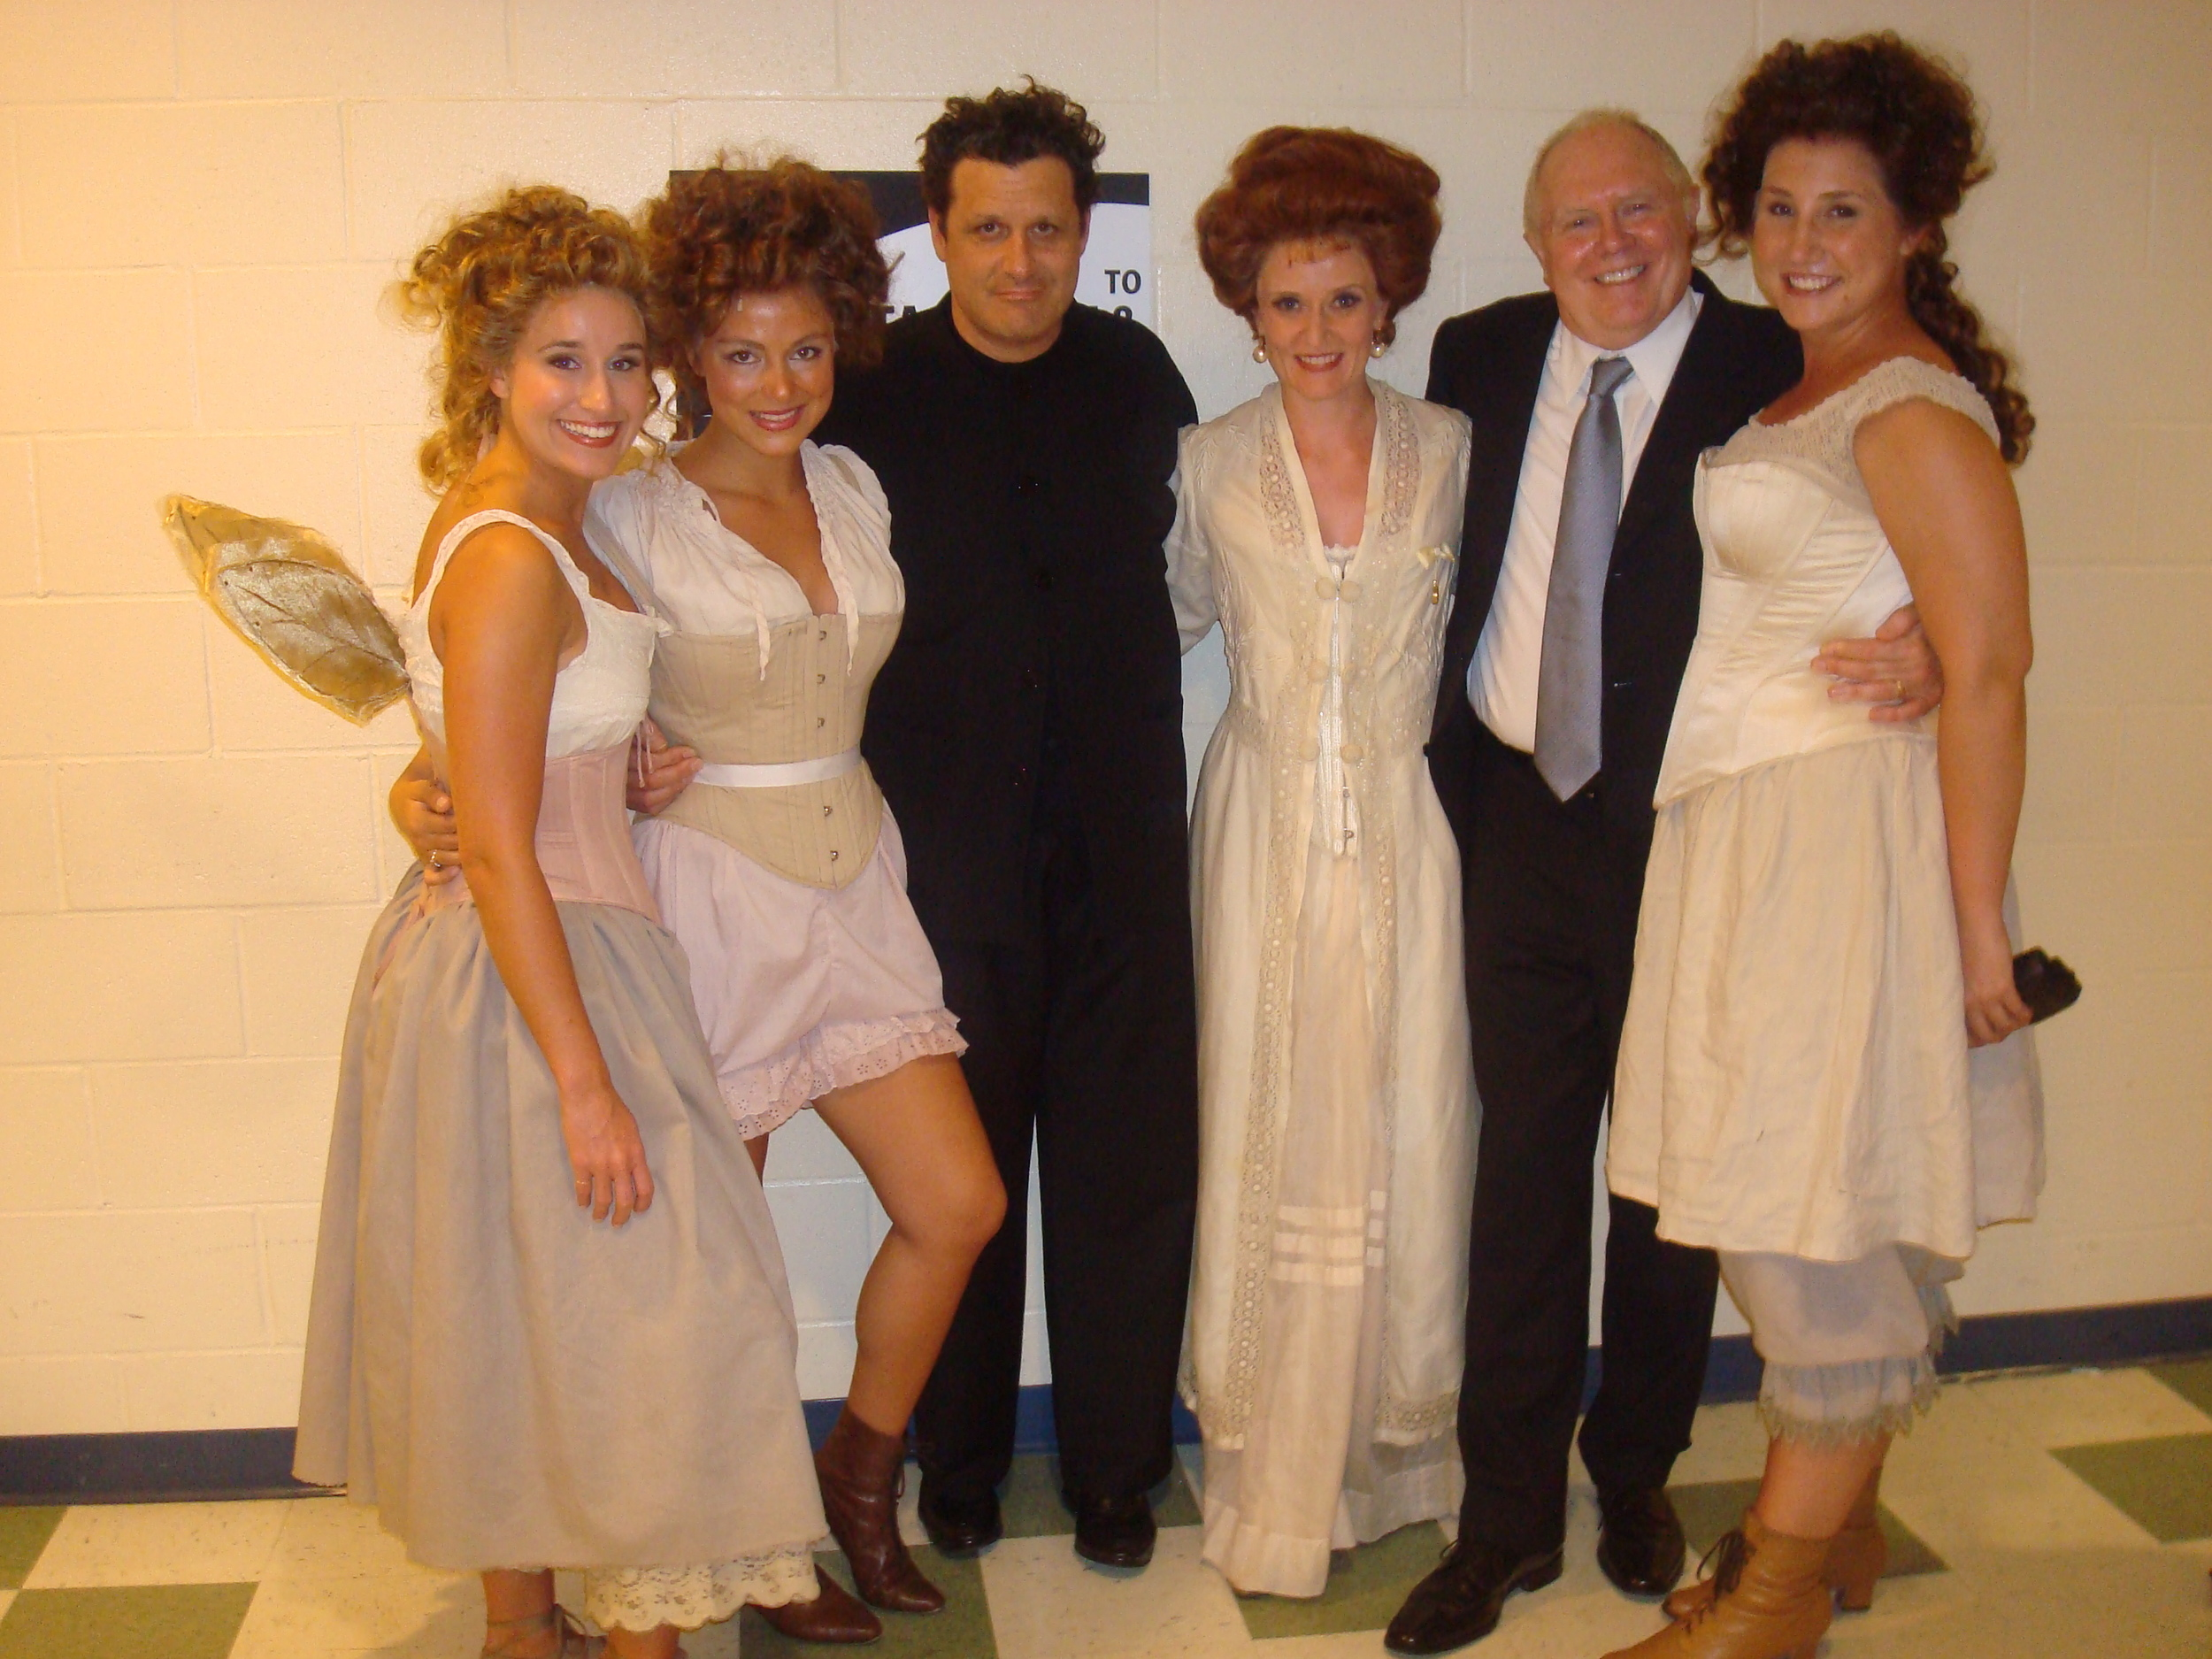 Lauren with Isaac Mizrahi and cast members of A Little Night Music